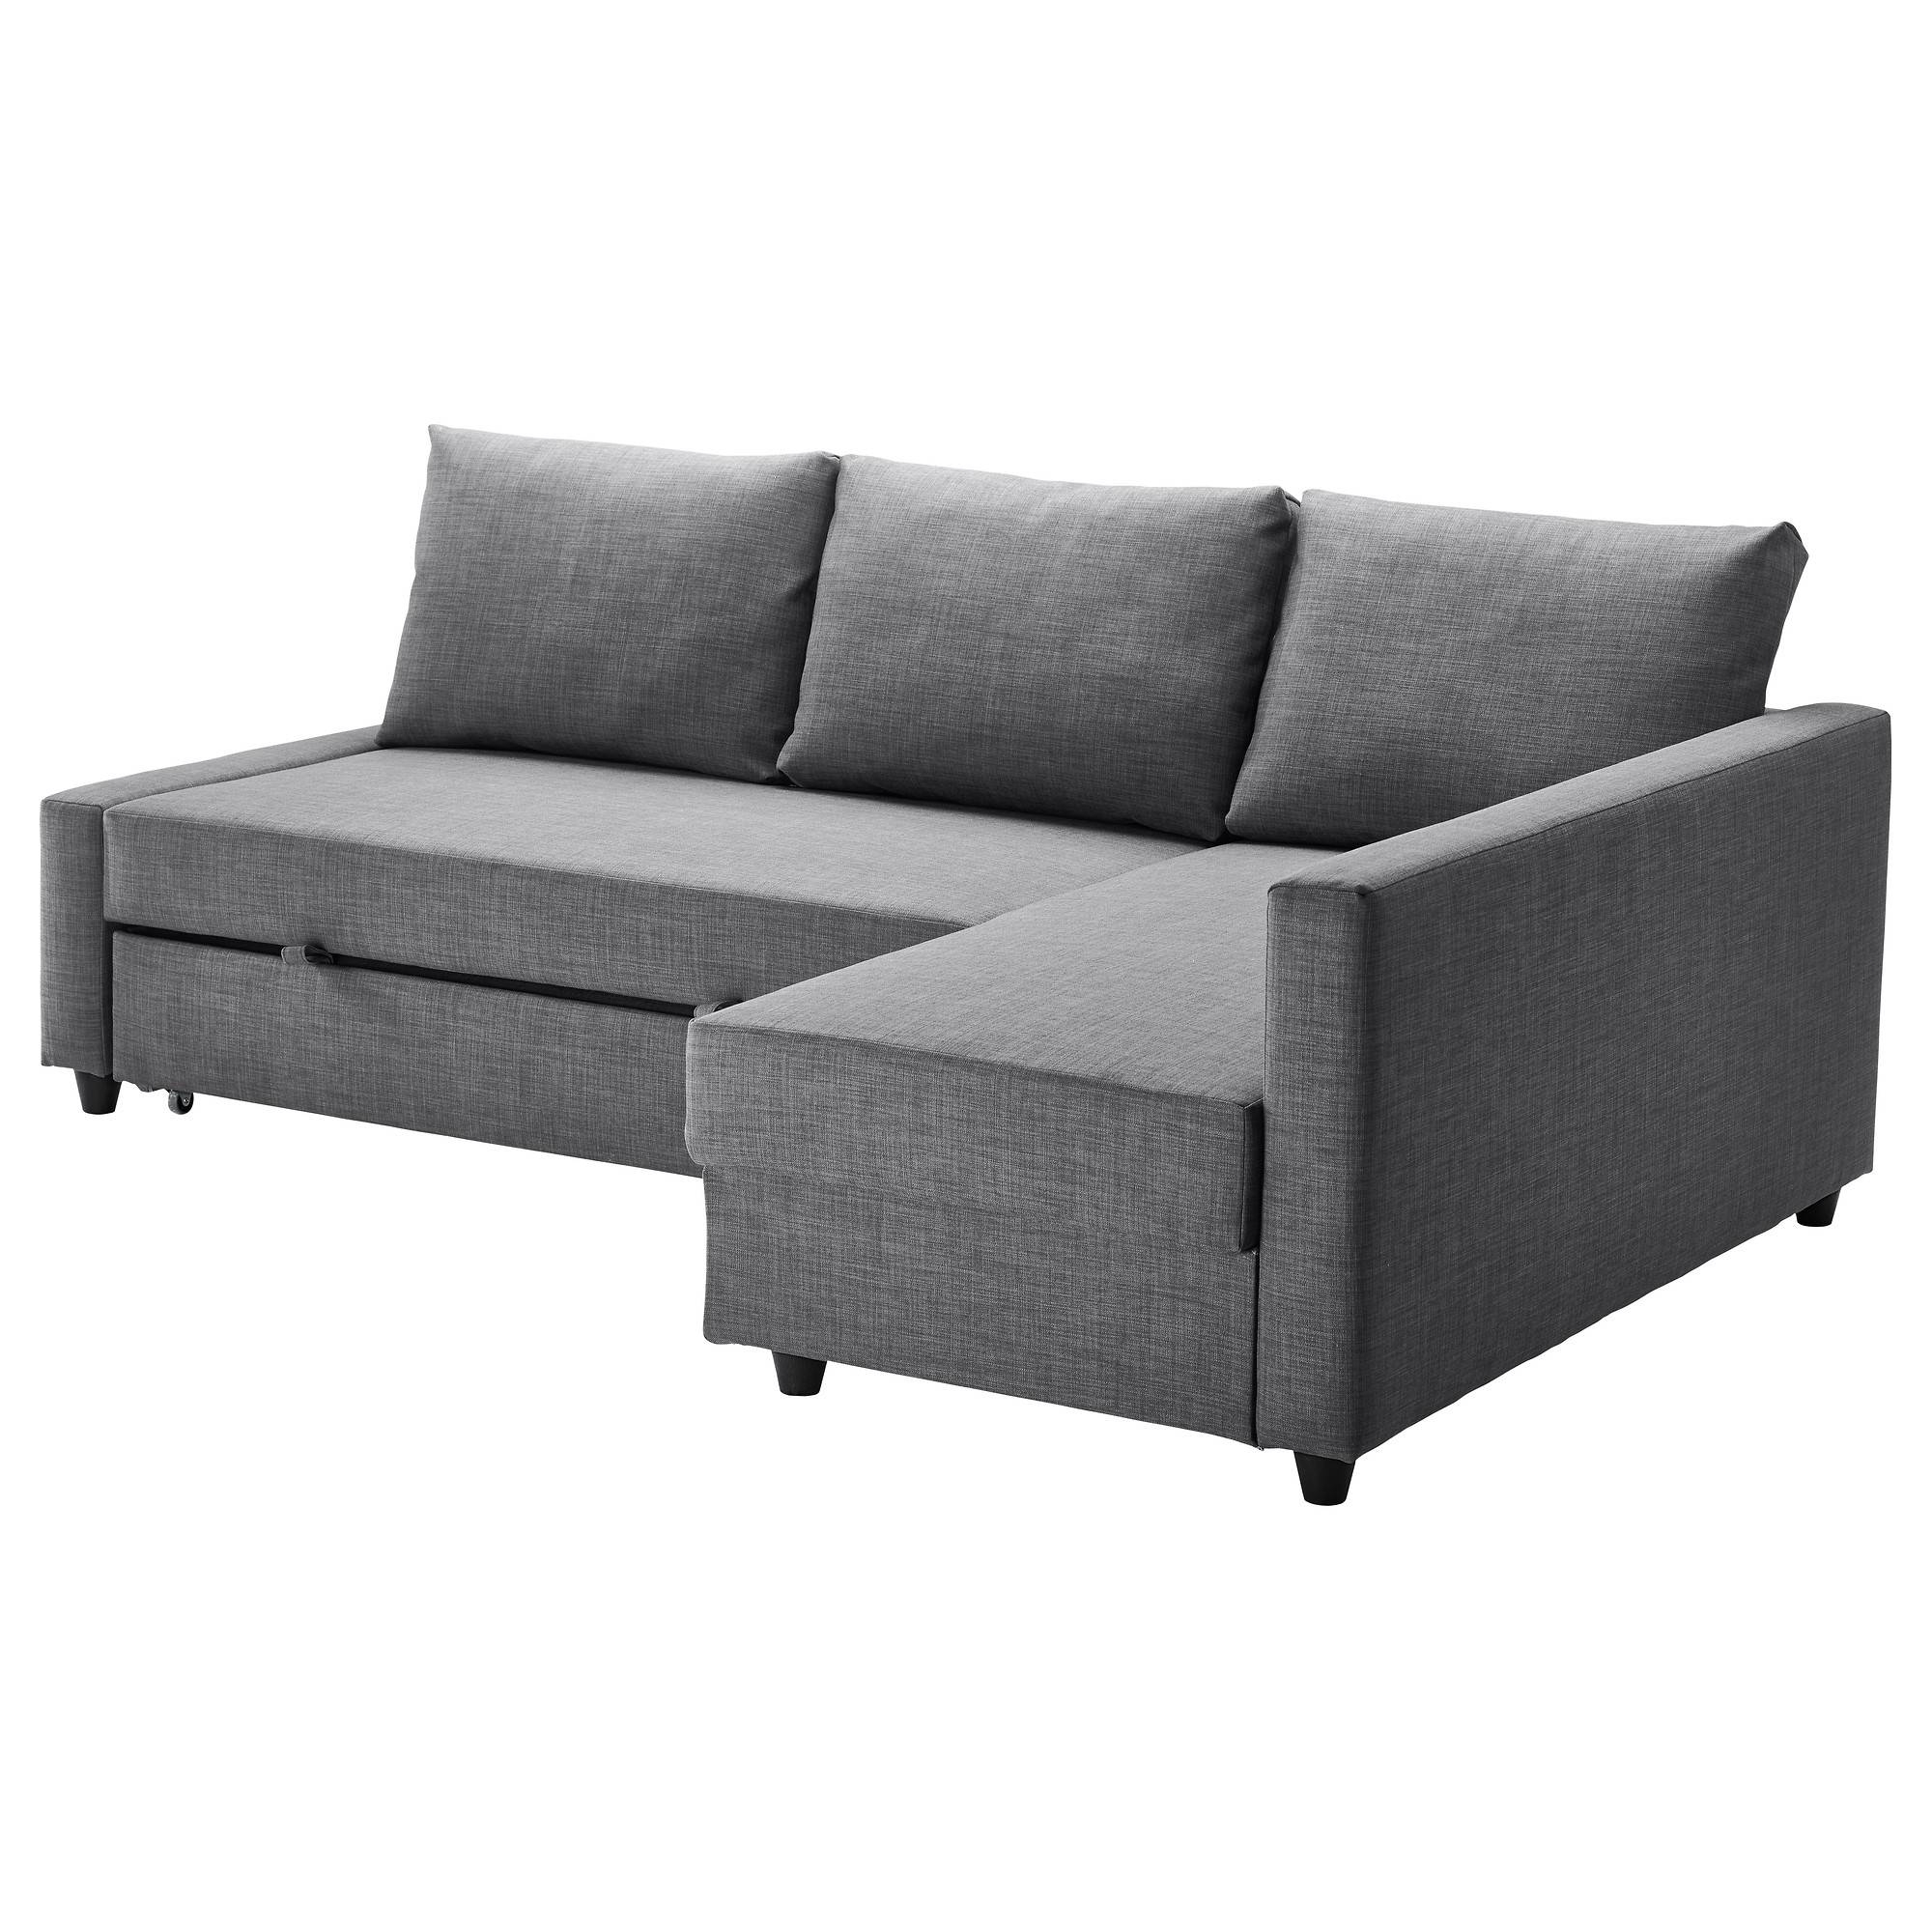 Sofa Beds & Futons – Ikea With Ikea Sectional Sofa Sleeper (View 21 of 25)